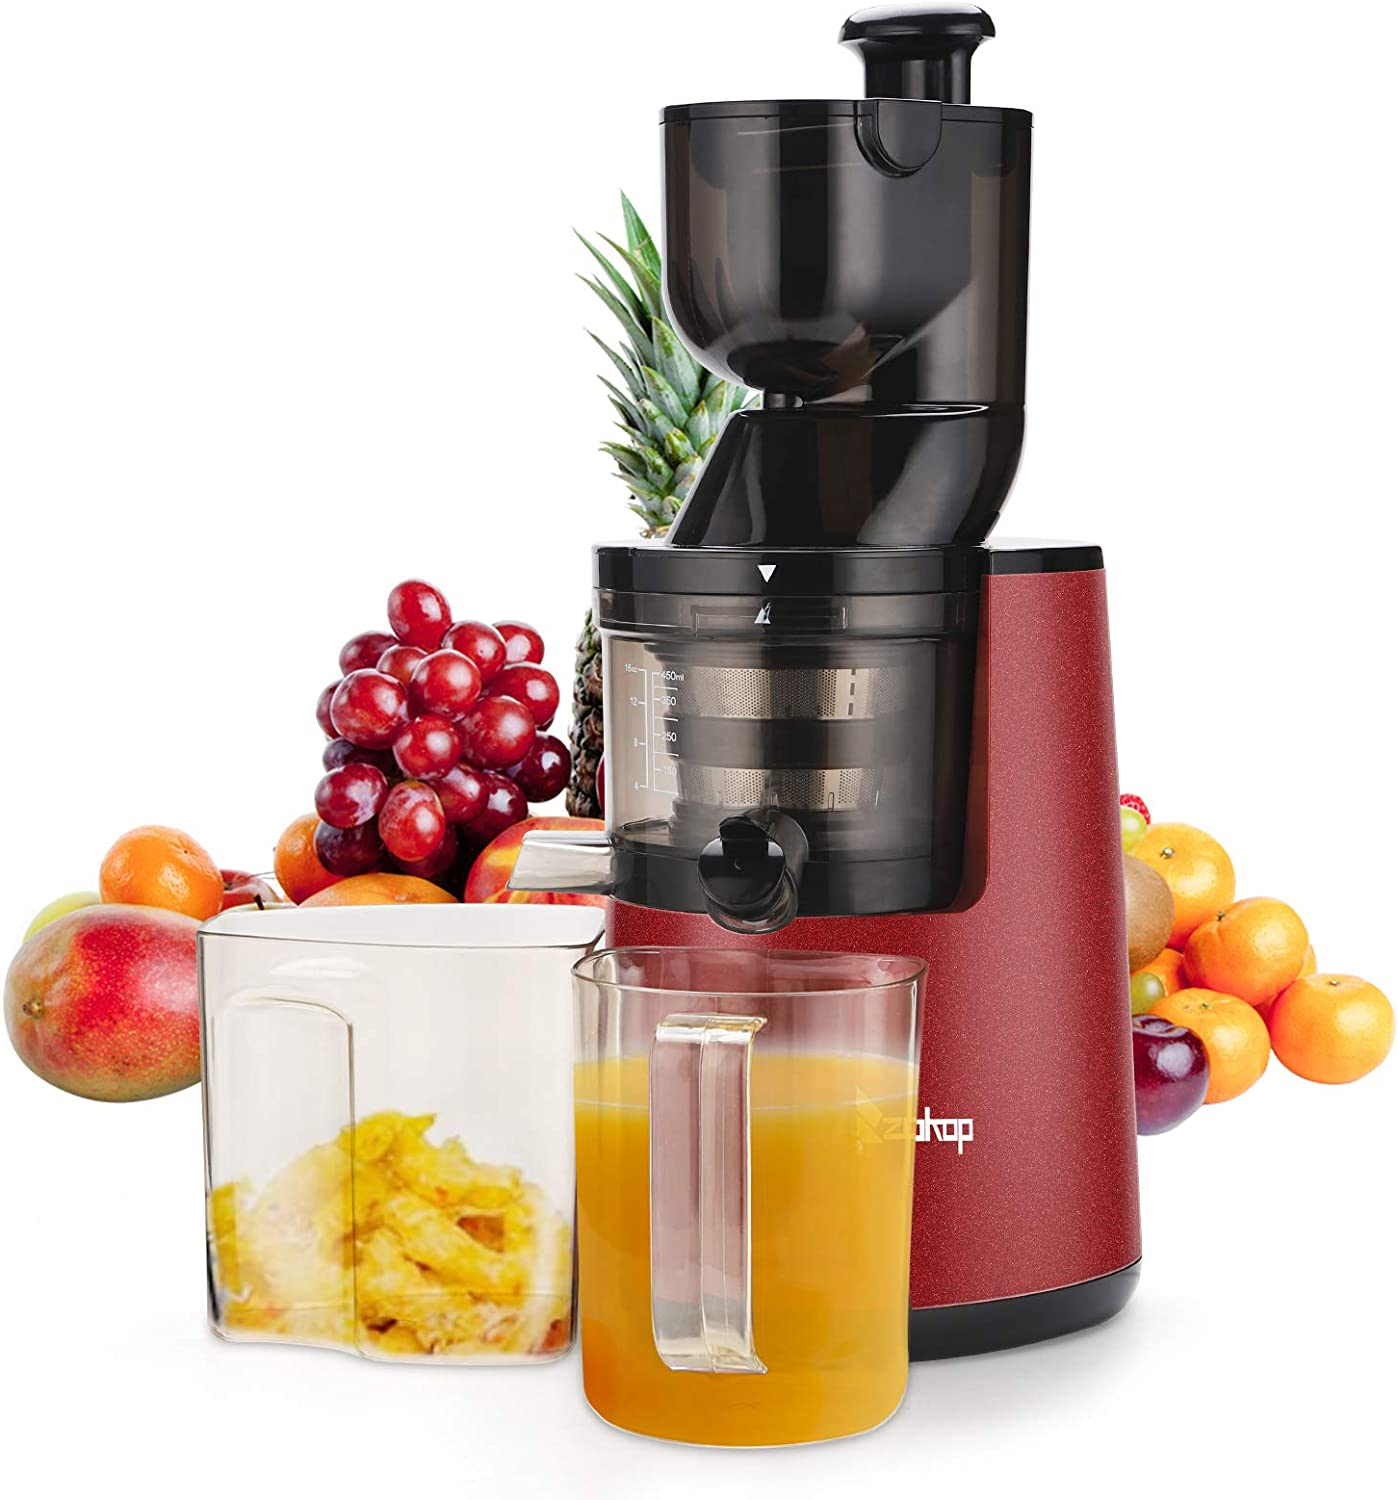 Juicer Machines Vegetable and Fruit, Slow Masticating Juicer Extractor Easy to Clean, Quiet motor and Reverse Function, Features Compact